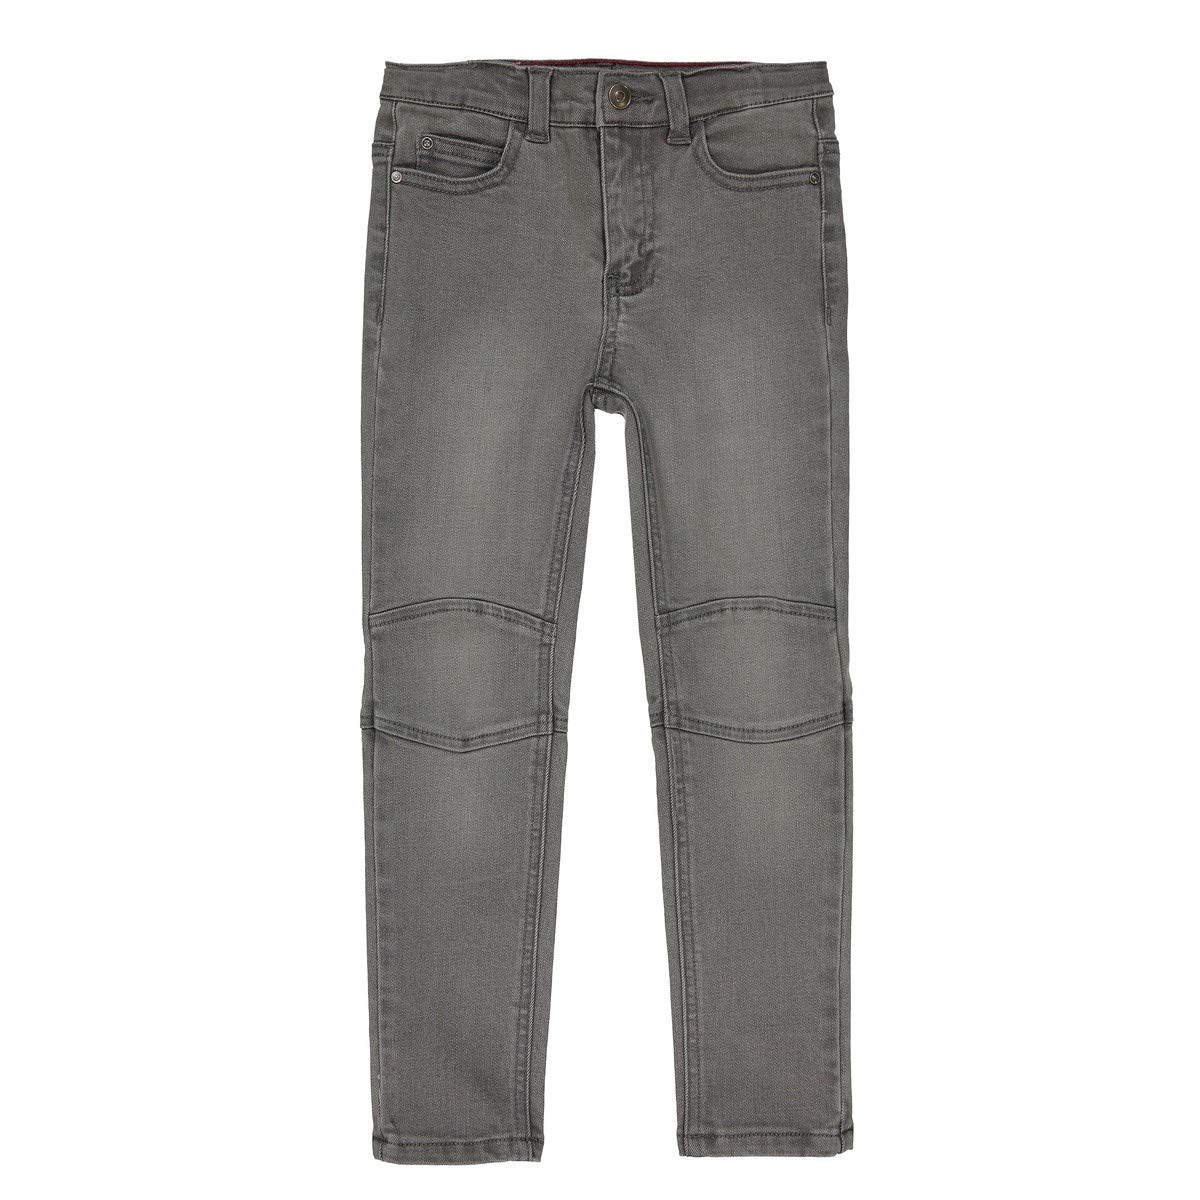 47 in. La Redoute Collections Big Boys Super Tough Slim Fit Jeans 3-12 Years Grey Size 7 Years